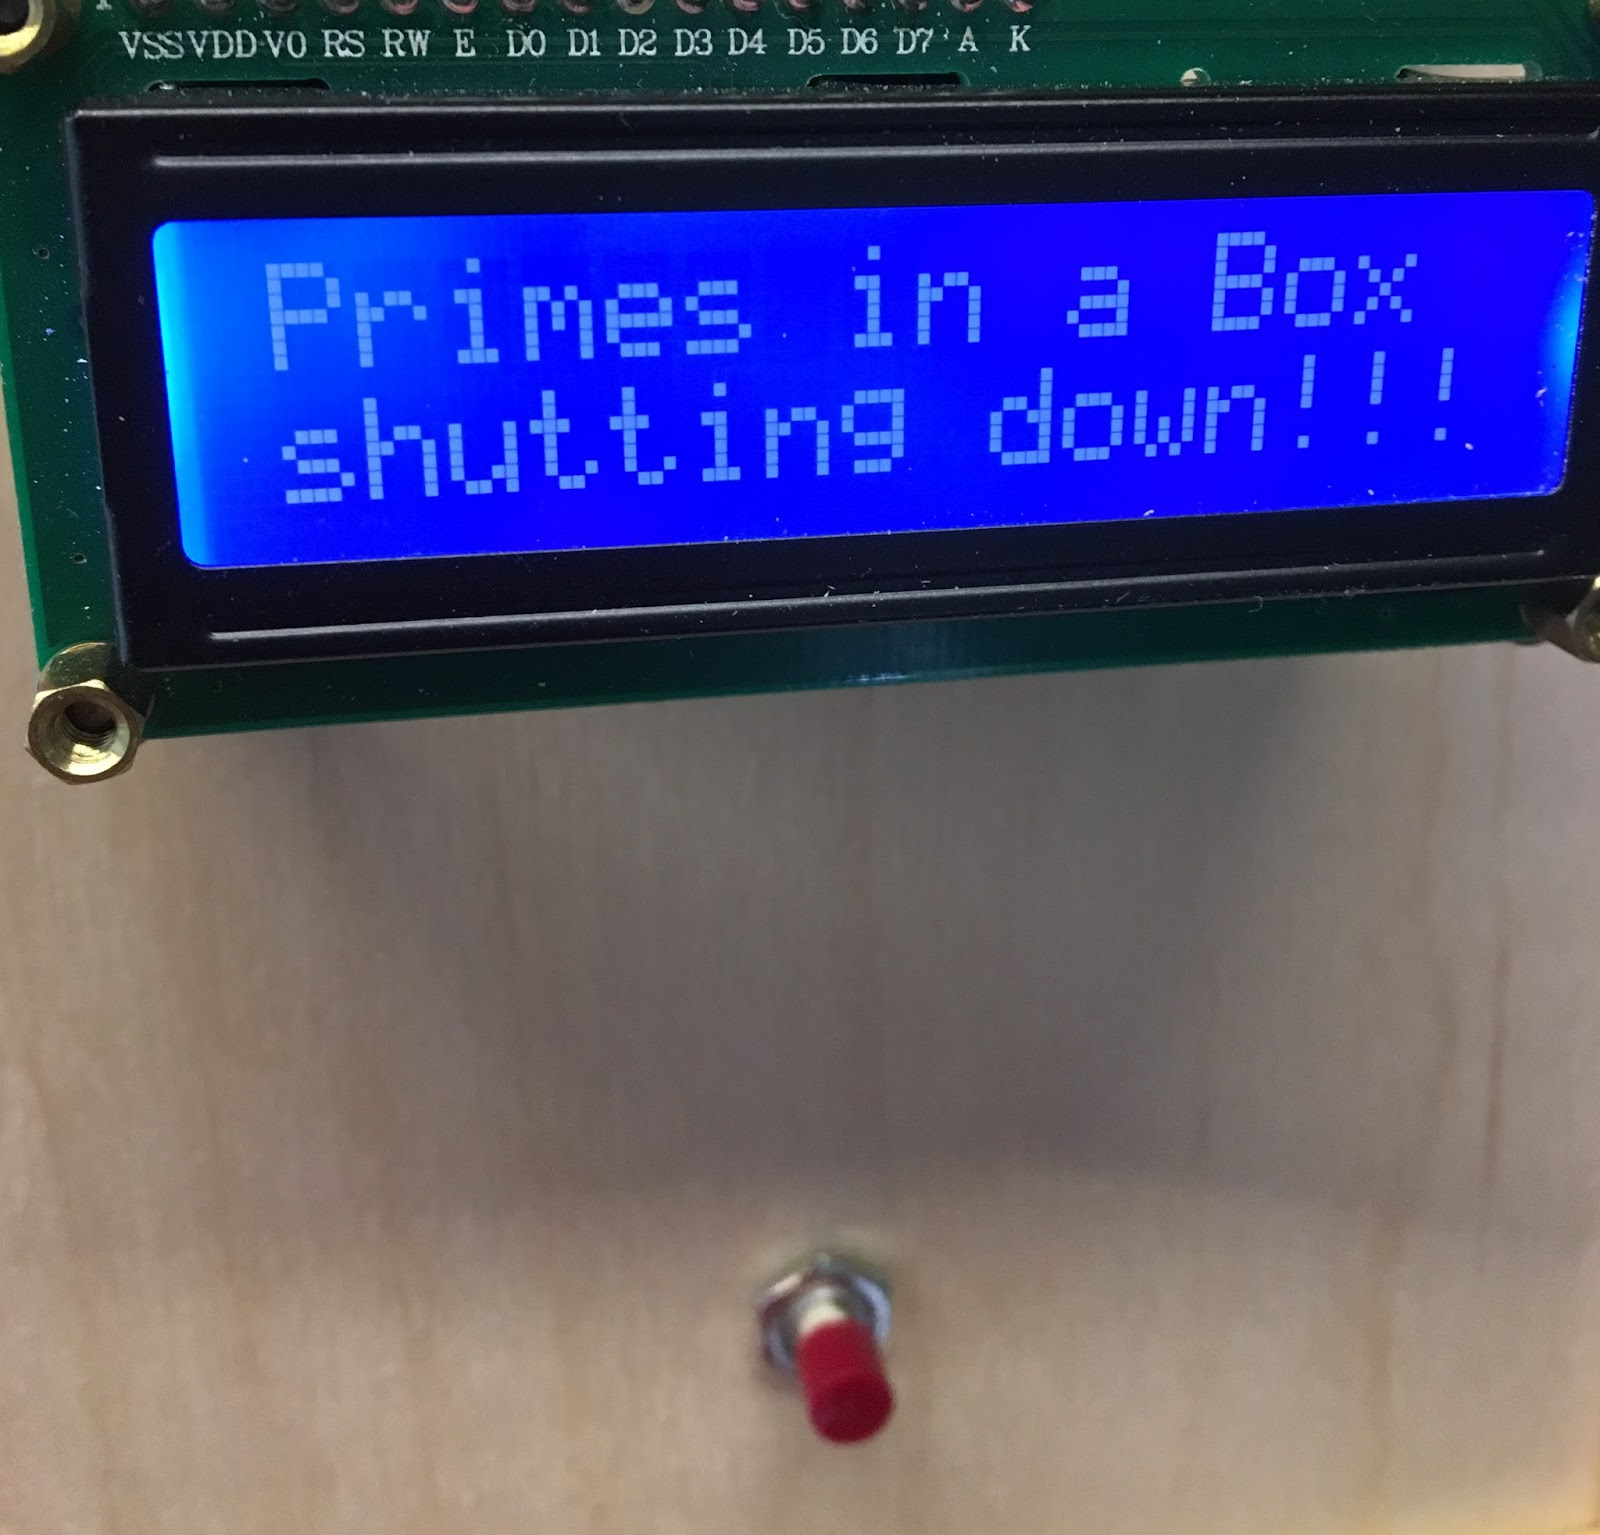 The button used to generate primes